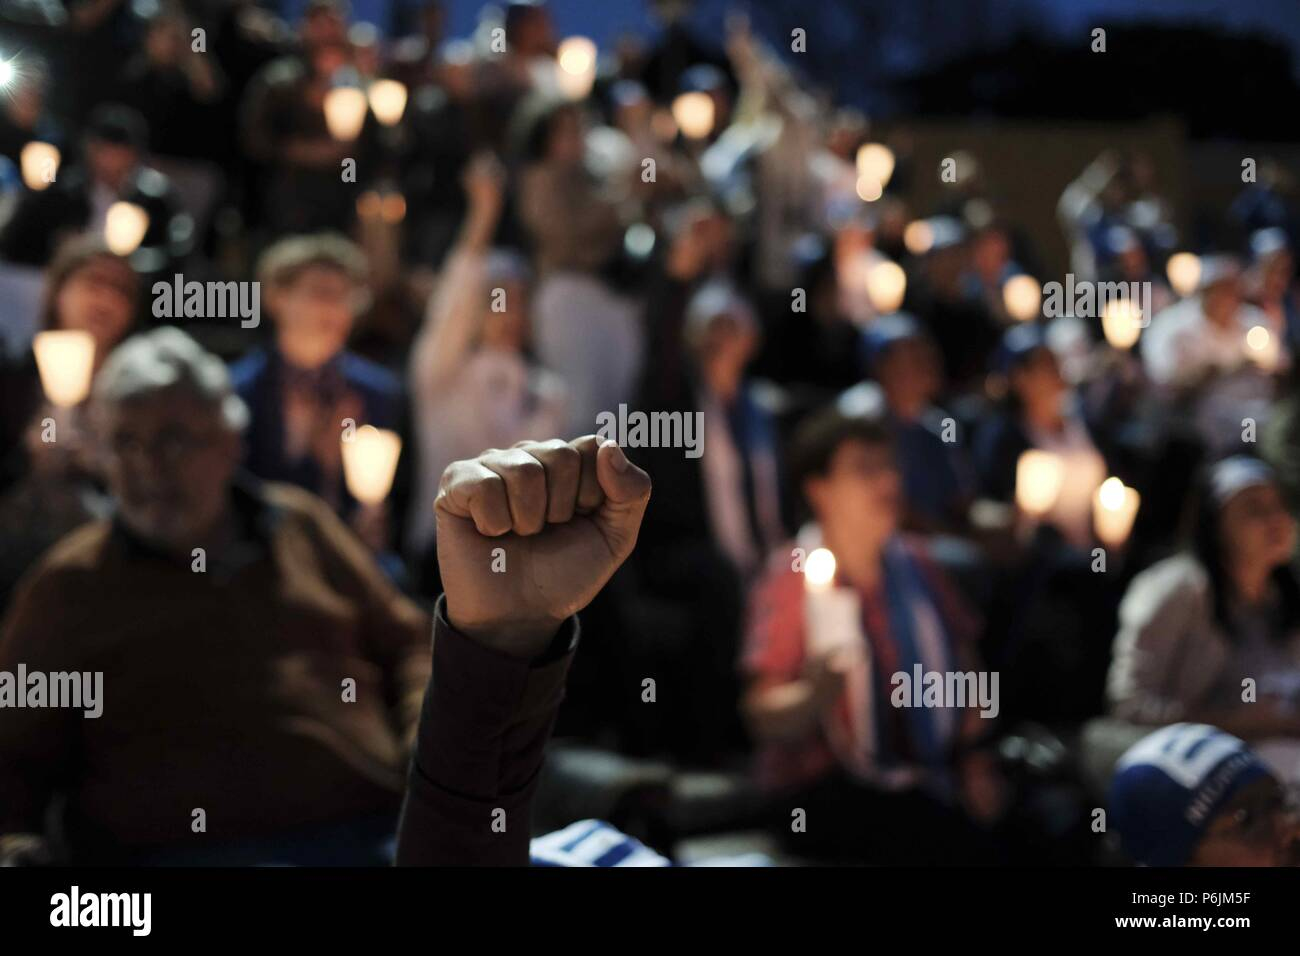 People participate in a vigil, organized by the Nicaraguan community, at Democracy Square in San Jose, Costa Rica, 30 June 2018. A group of Nicaraguans living in Costa Rica gathered to protest against the deaths of more than 280 people in the recent civil unrest in Nicaragua. EFE/Jeffrey Arguedas - Stock Image